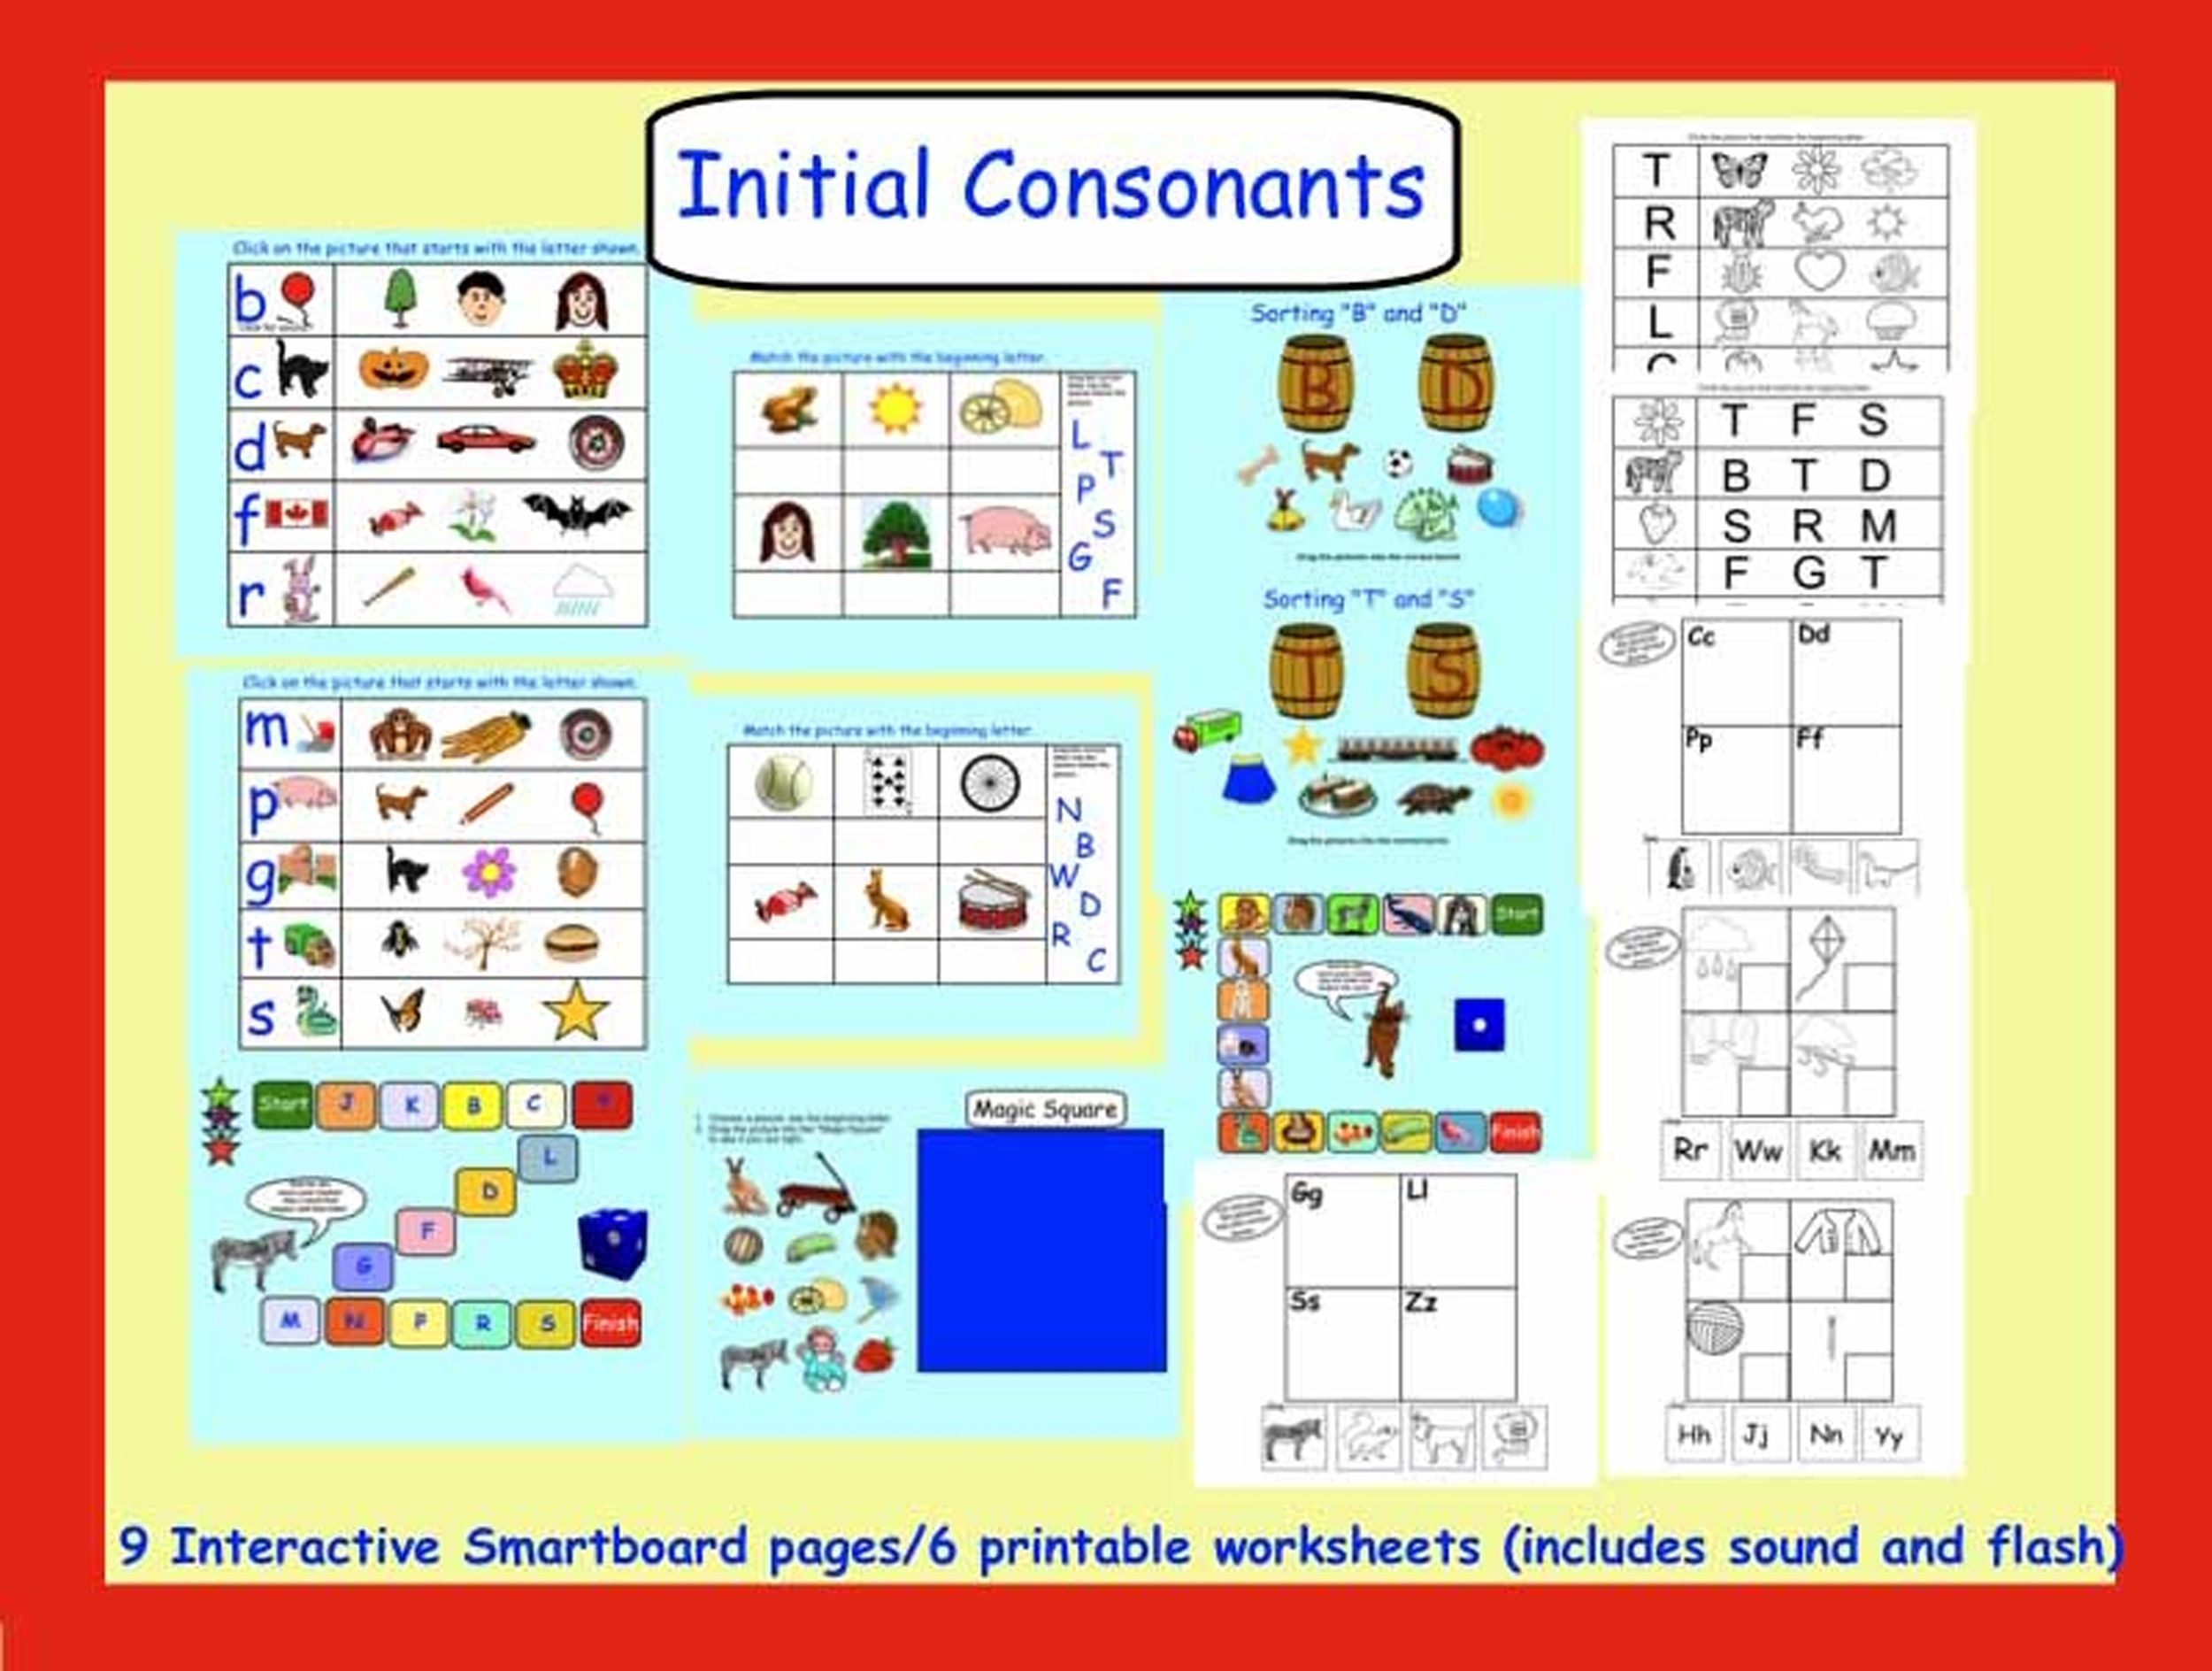 Smartboard Interactive Initial Consonants With Sound And